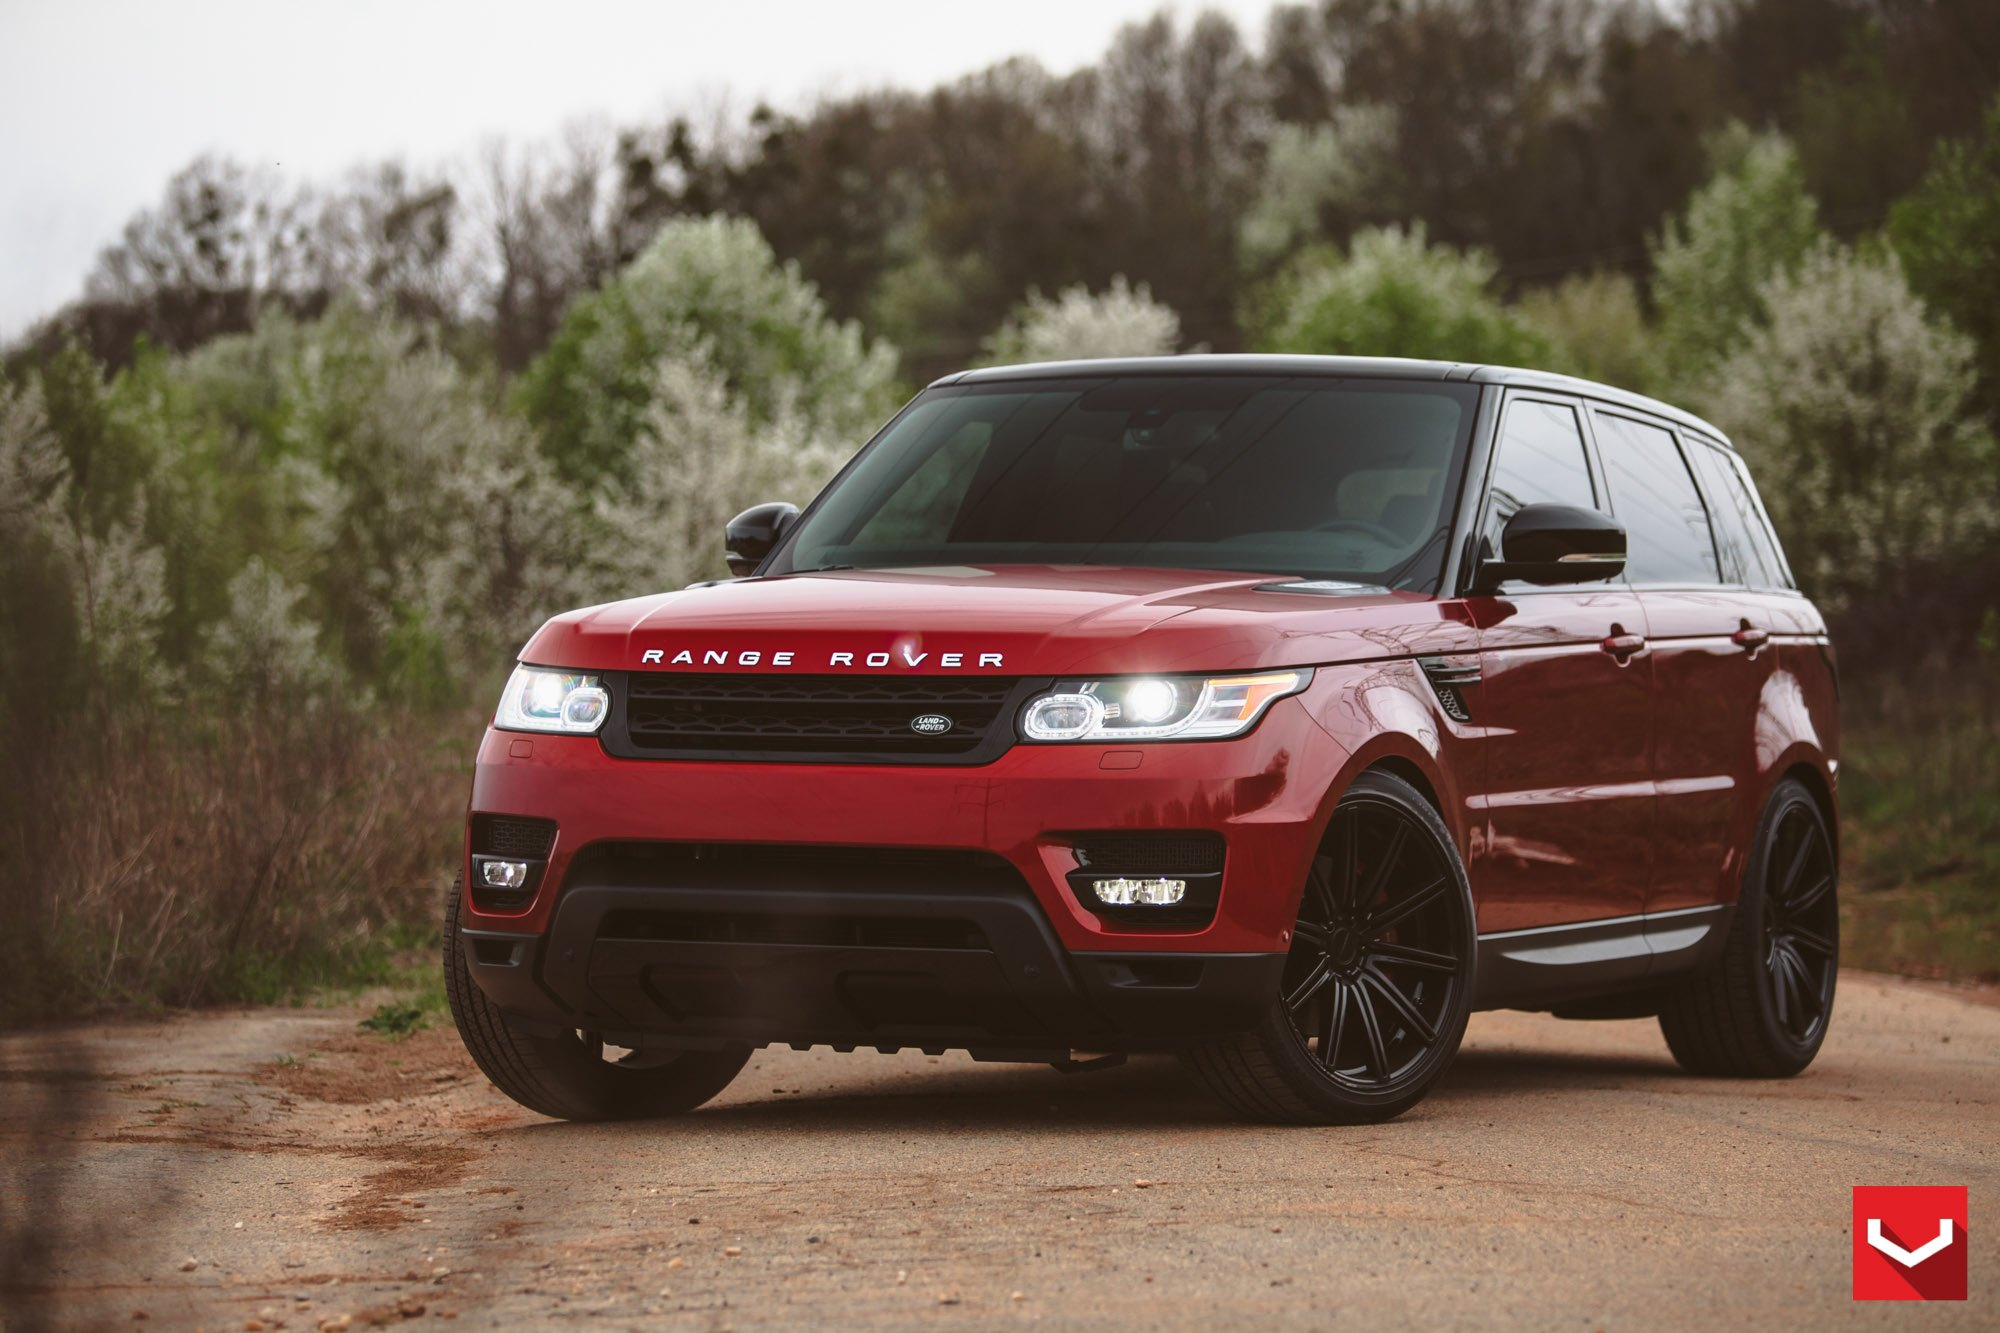 A Touch of Style for Red Land Rover Ranger Rover with Custom Parts